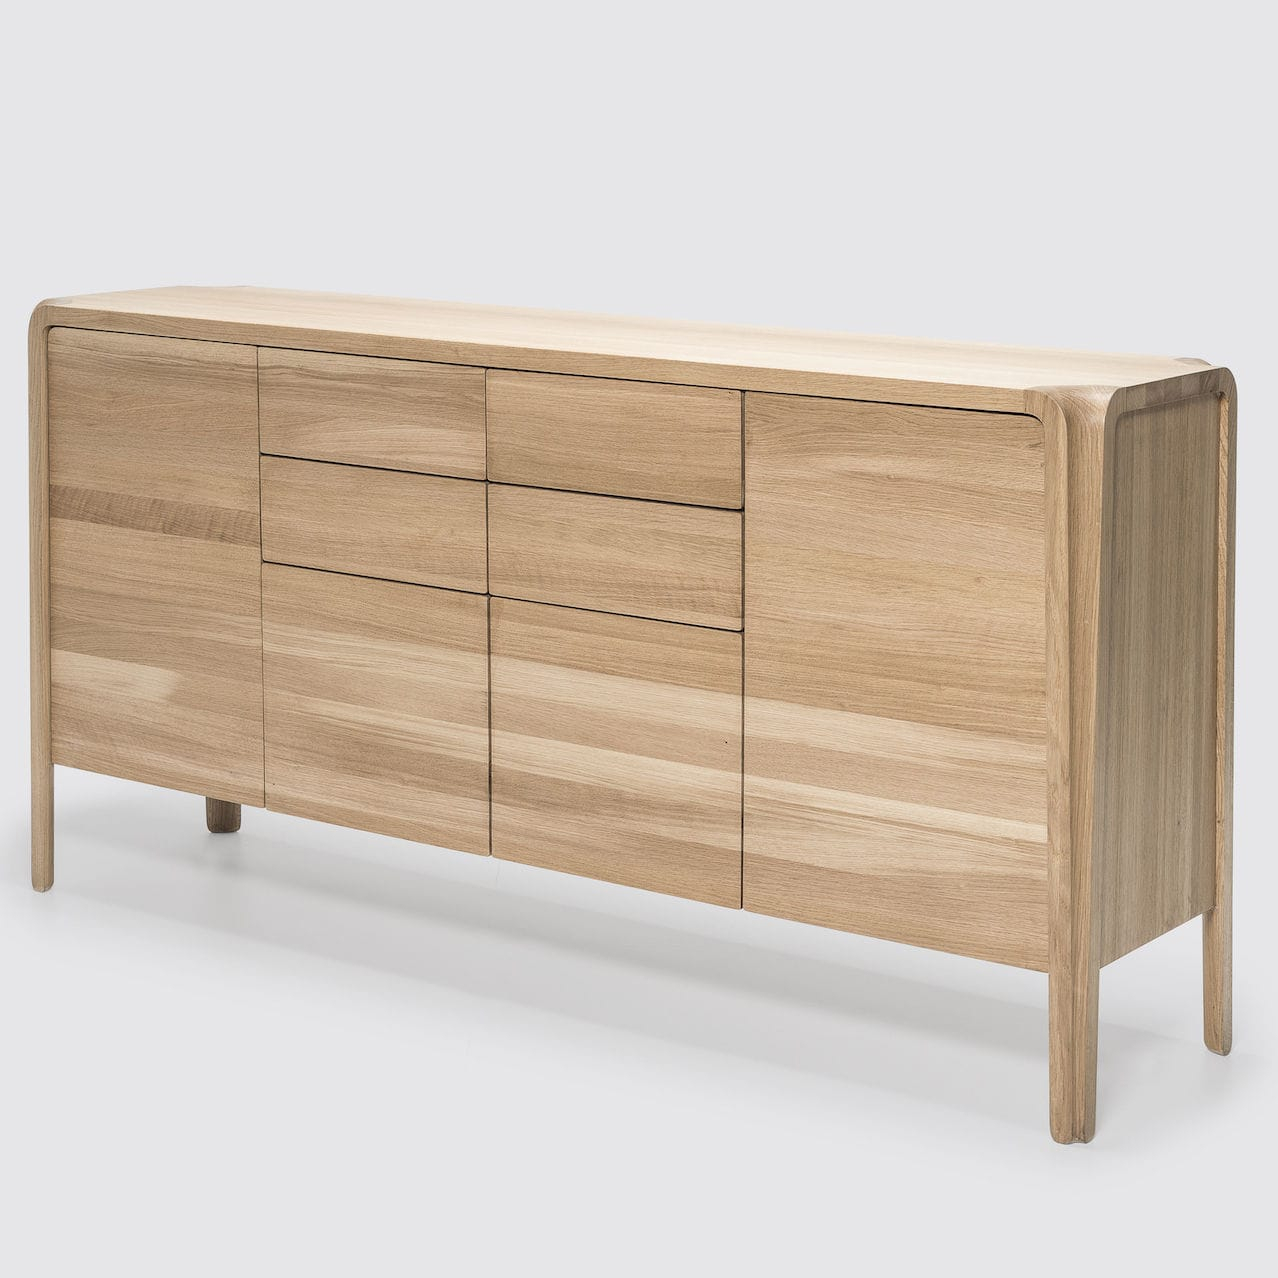 Contemporary Sideboard / Oak / Solid Wood / Ash – Primum Throughout Solid Wood Contemporary Sideboards Buffets (View 6 of 30)